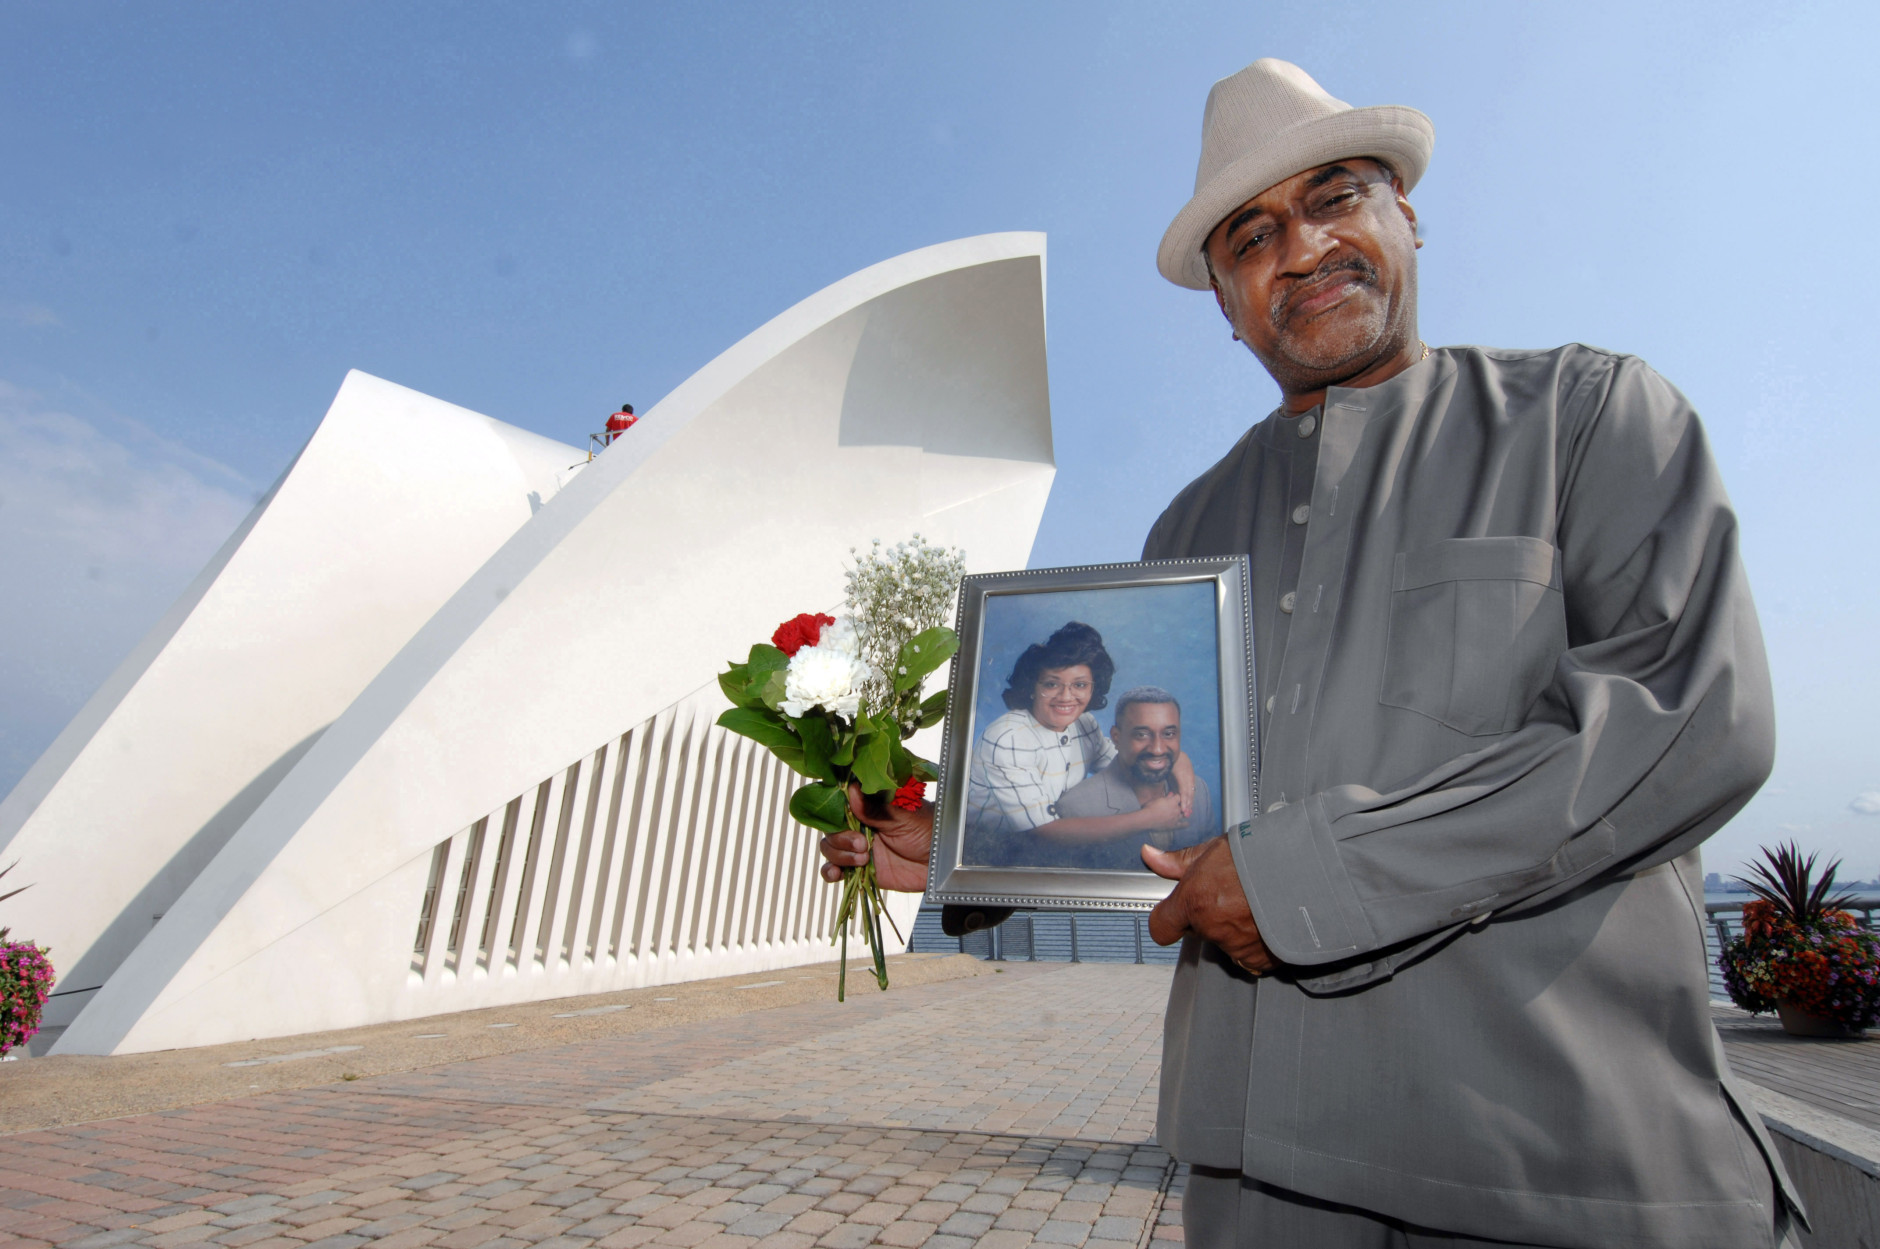 Joseph Jones, whose wife Felicia Dunn-Jones died of lung disease five months after inhaling toxic dust in the 9/11 terrorist attacks, poses with their portrait at the 9/11 Memorial on Staten Island, New York on Thursday, Sept. 6, 2007. Her name has been added to the list of victims of the Sept. 11, 2001 attacks on the World Trade Center. (AP Photo/Henny Ray Abrams)